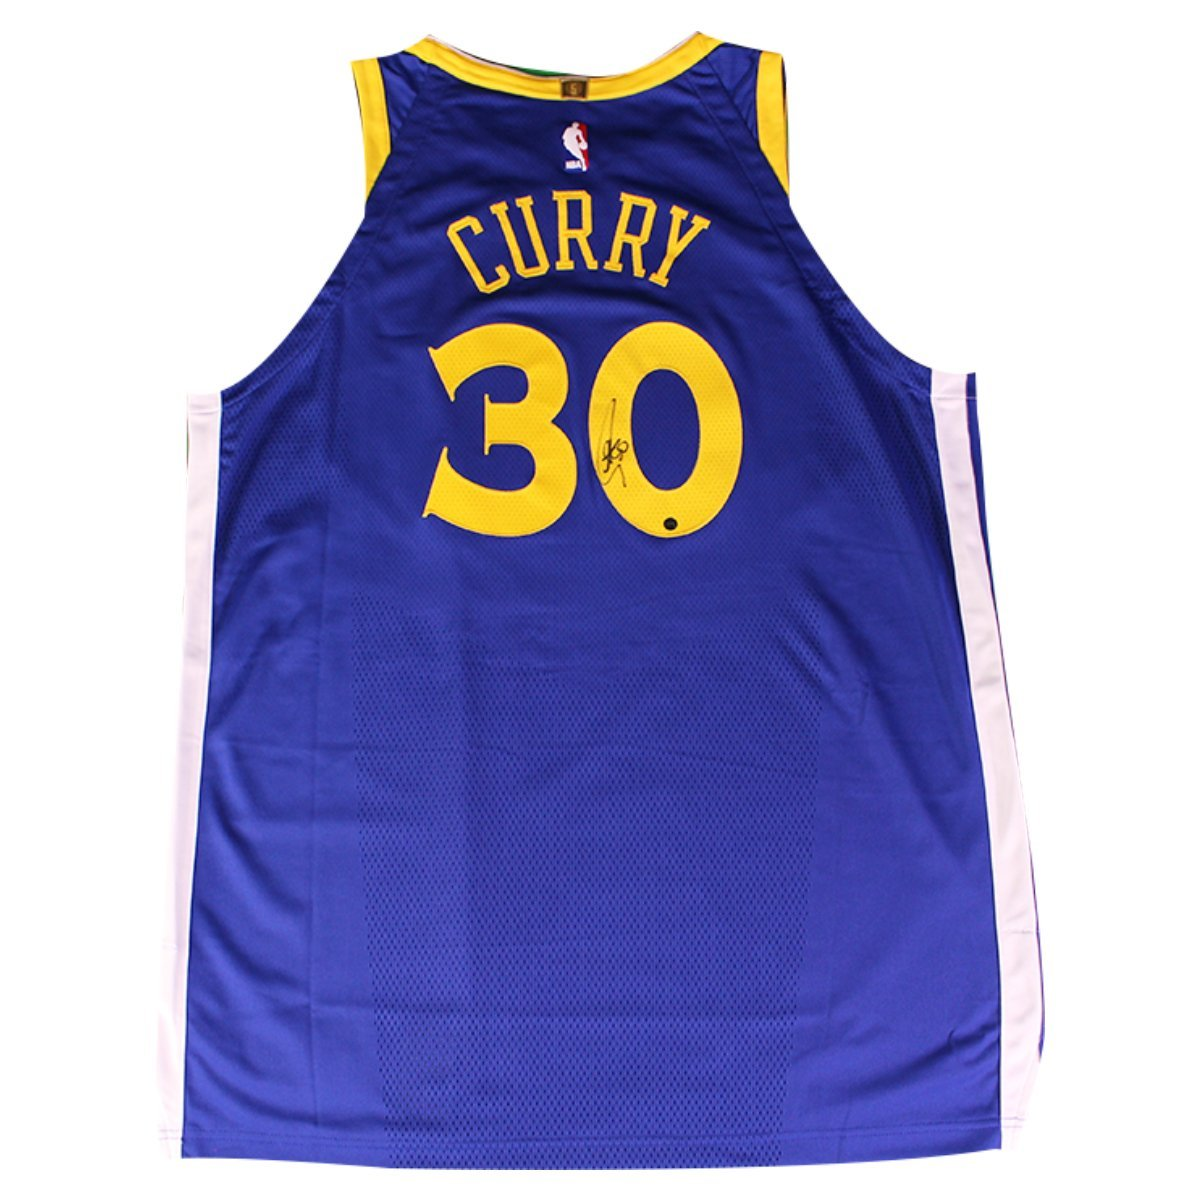 Nike Authentic On Court Jersey (autographs will vary)